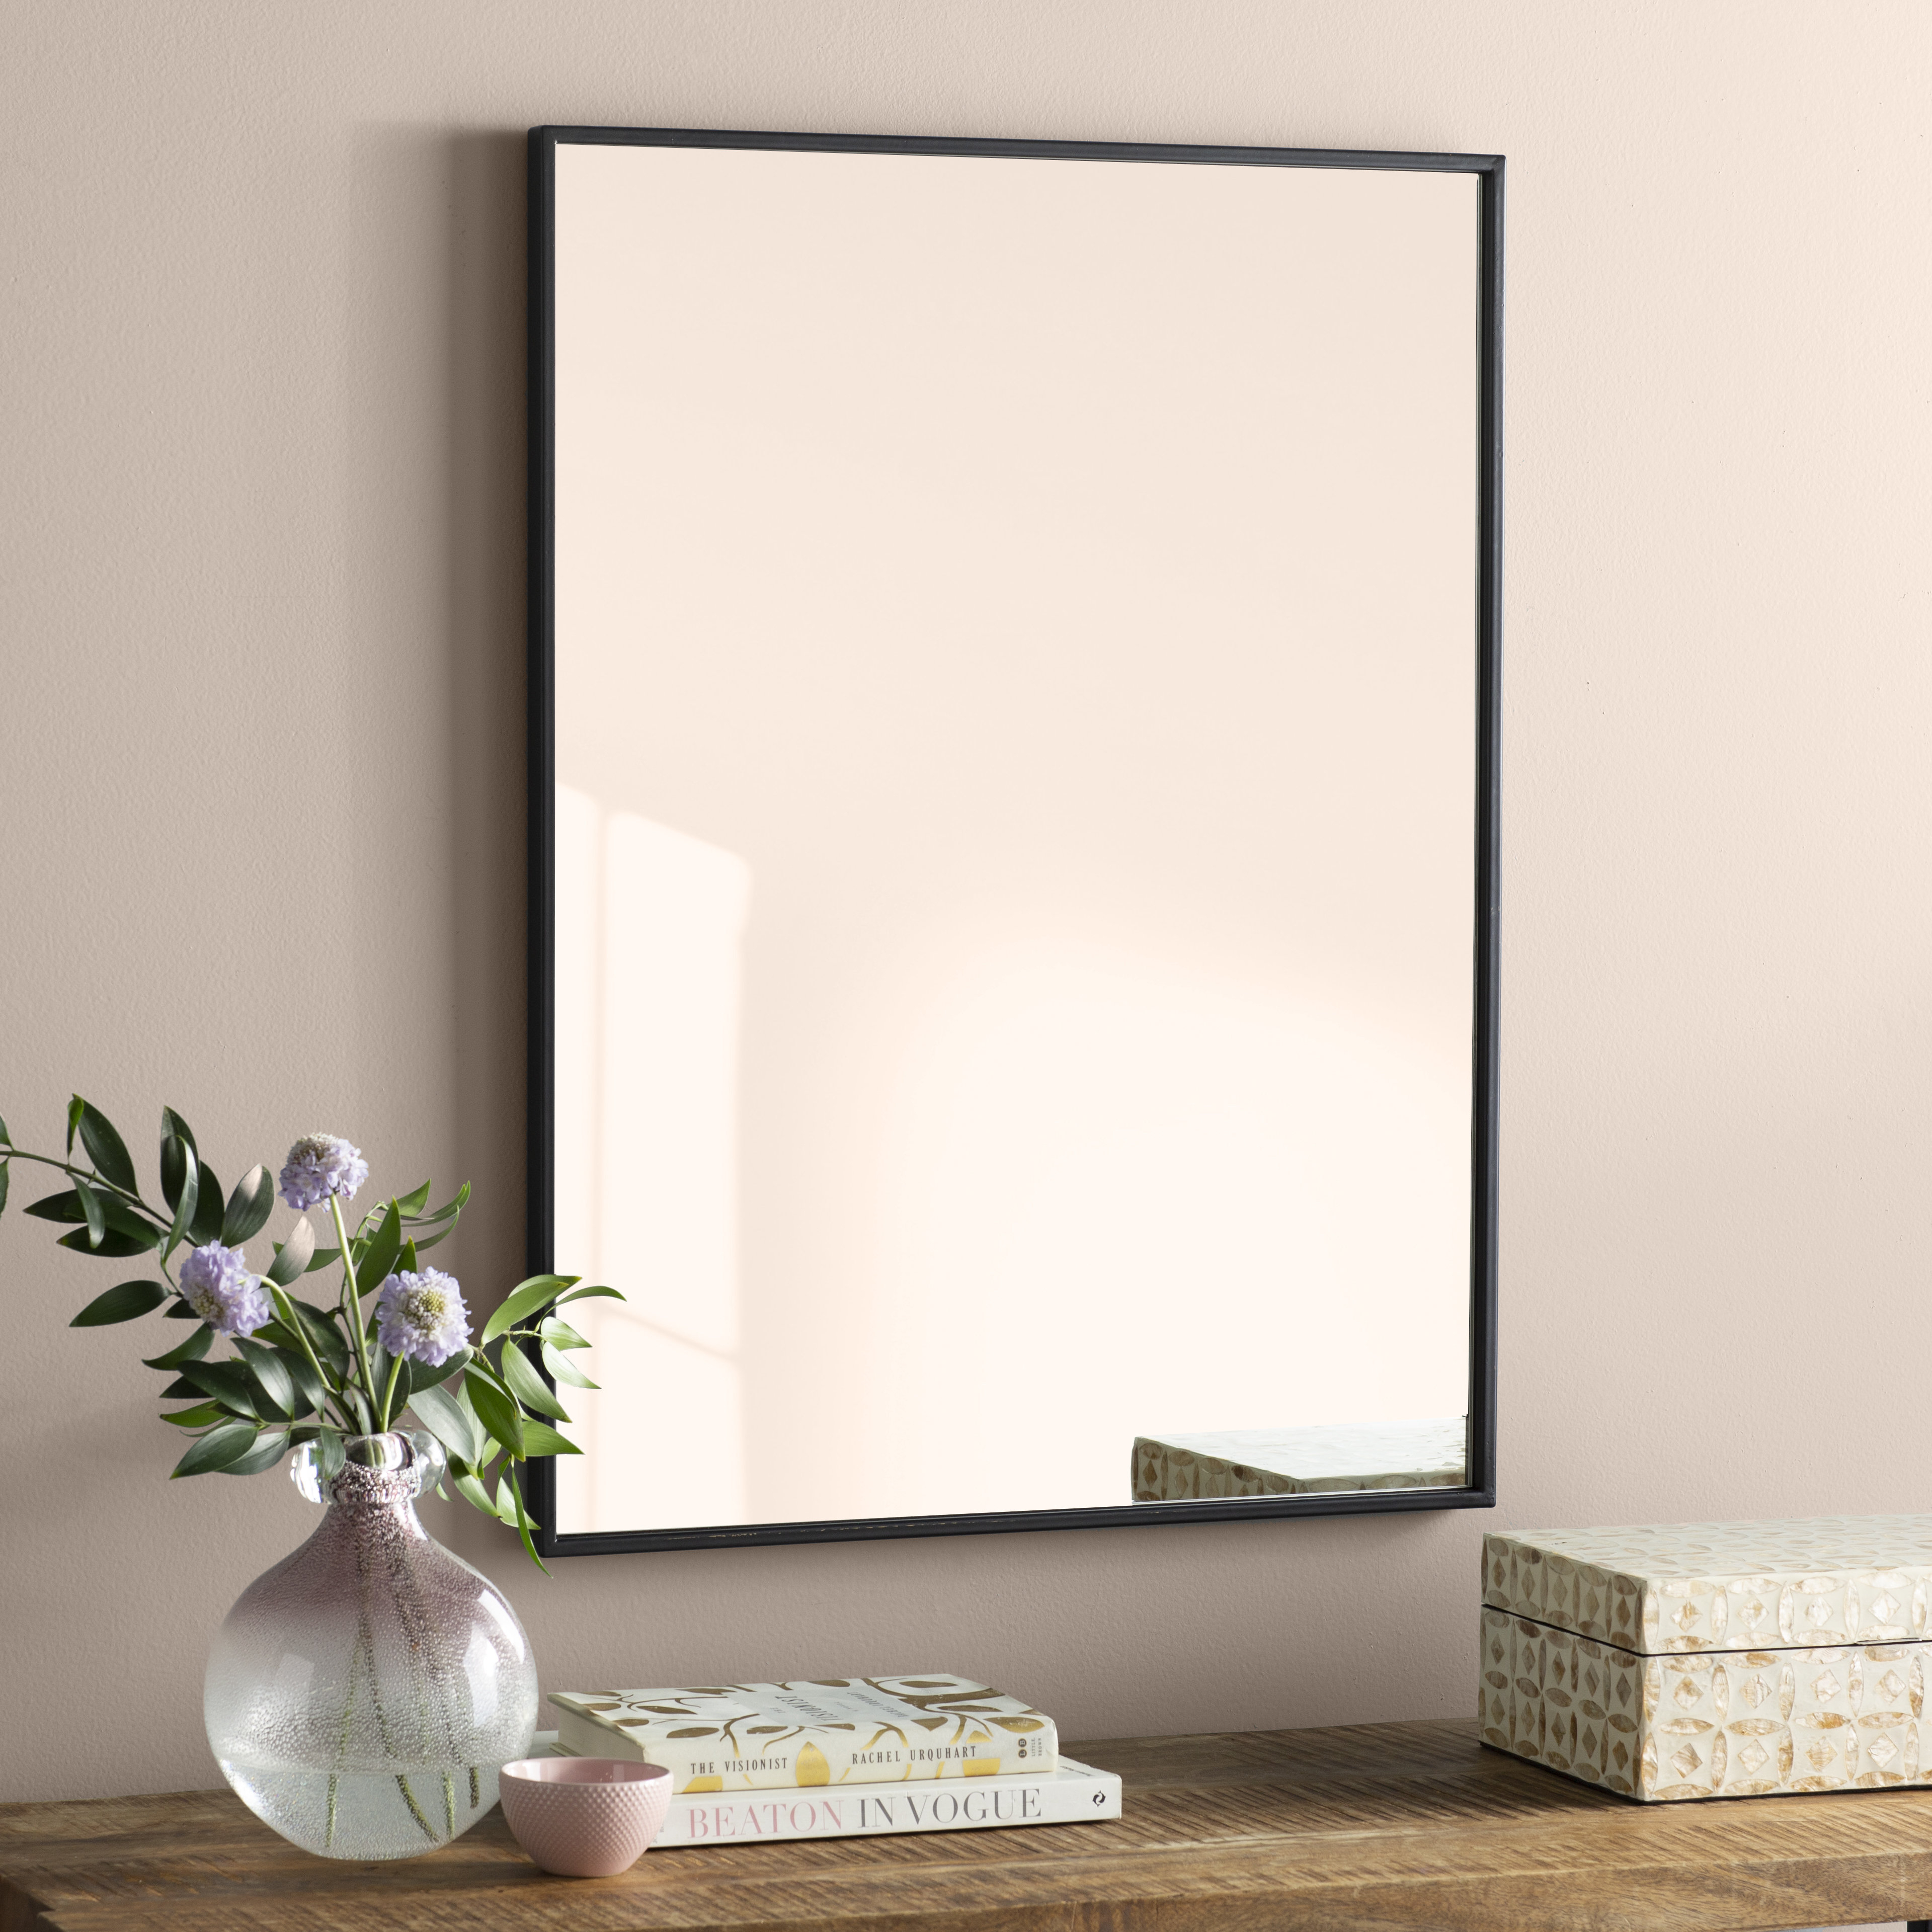 Joss & Main Essentials Accent Mirror Intended For Shildon Beveled Accent Mirrors (View 7 of 20)